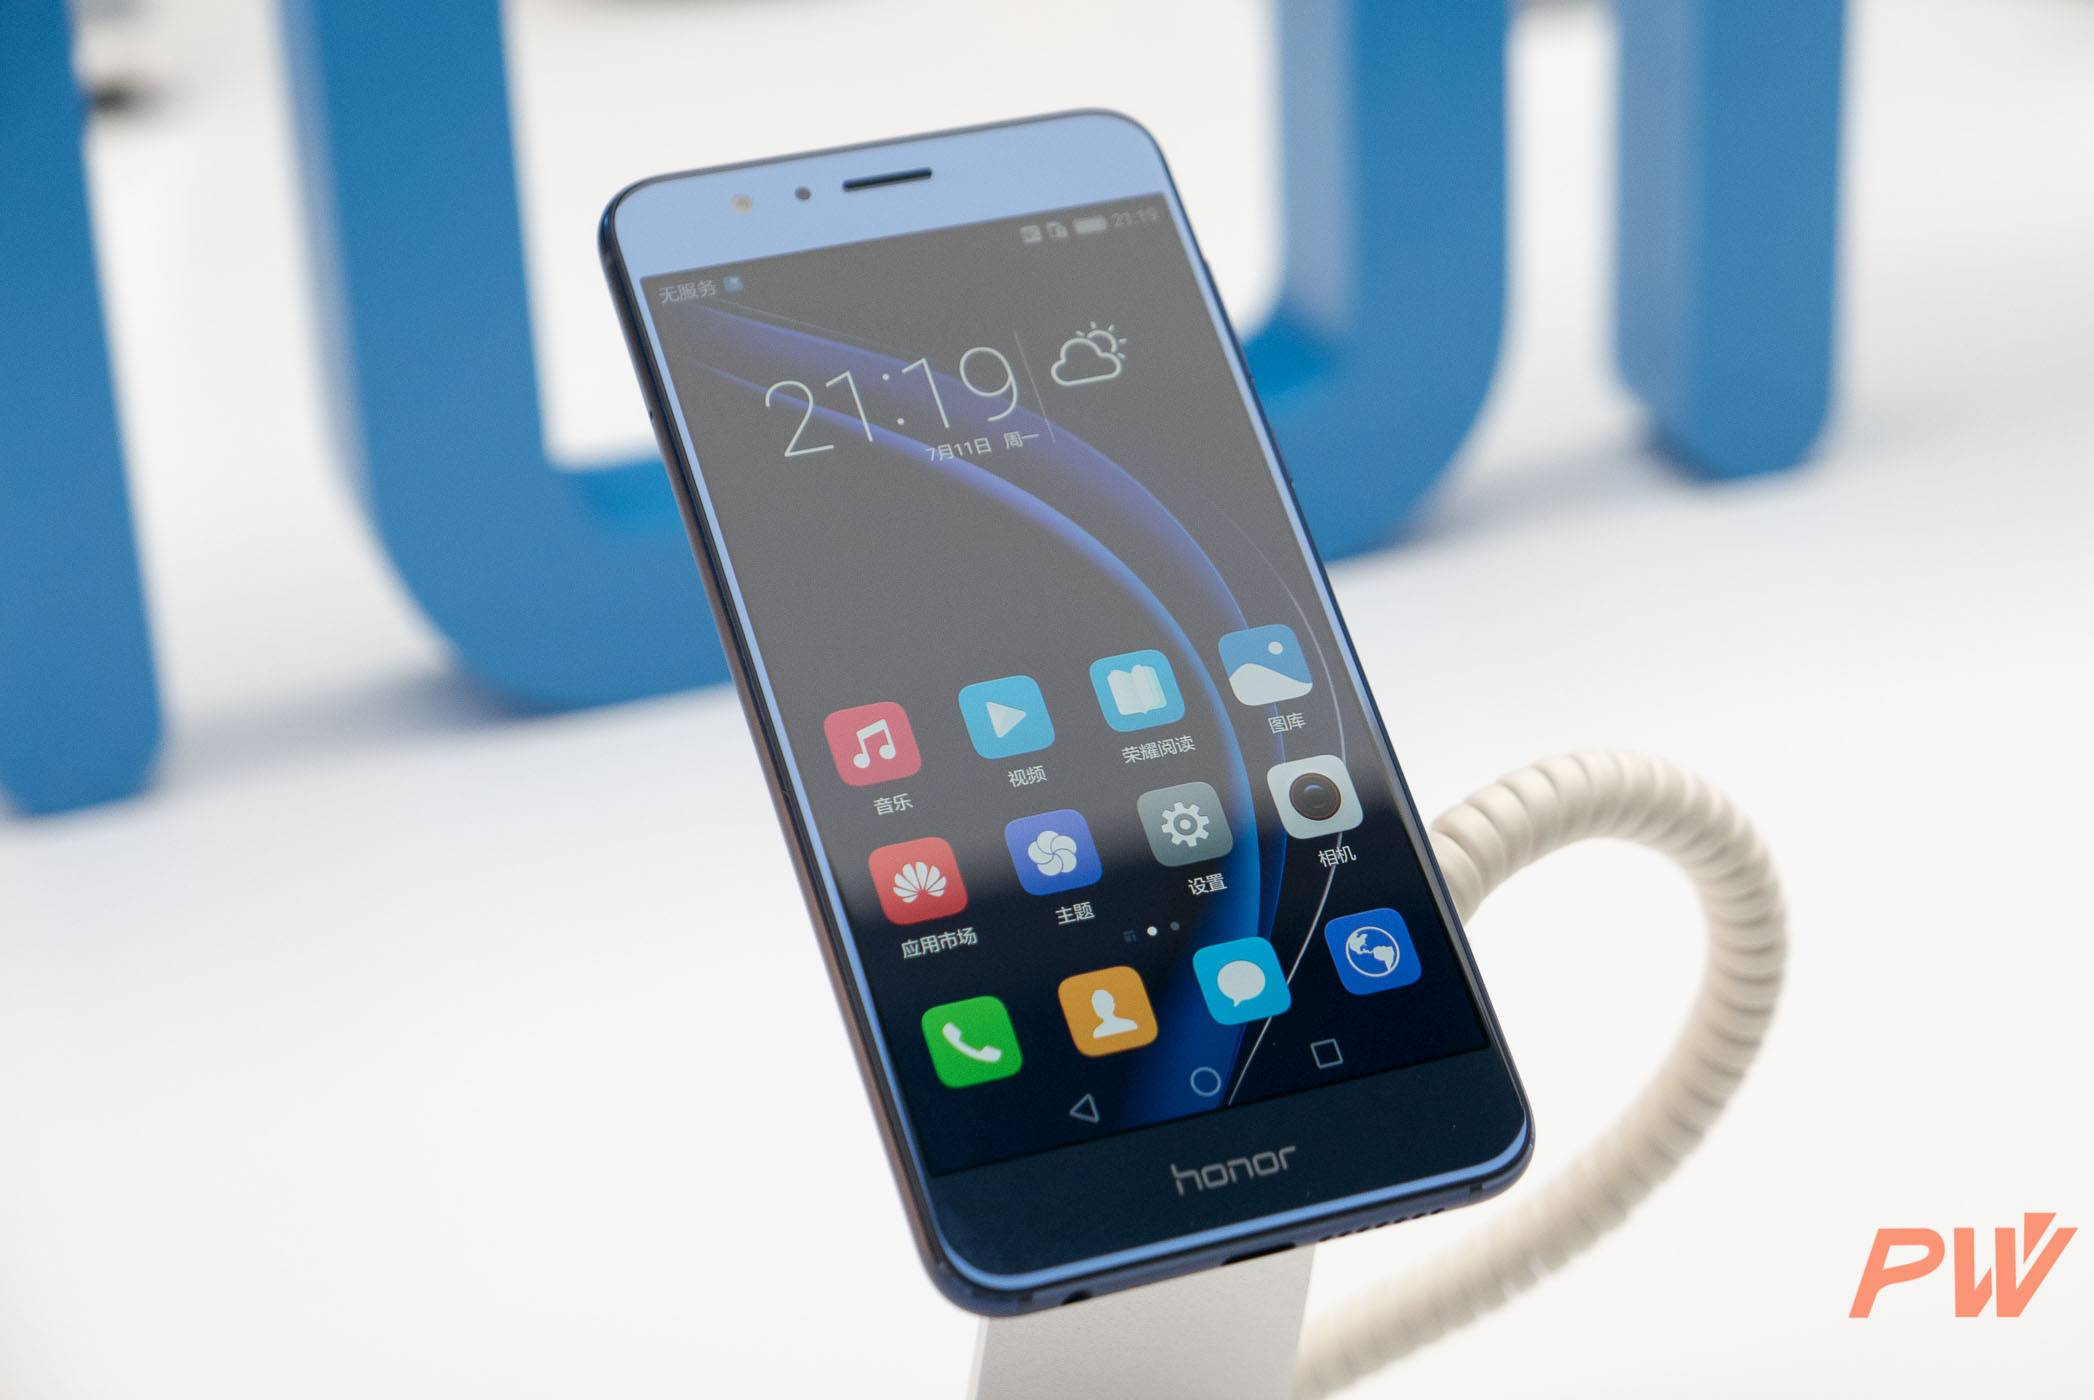 Huawei Honor 8 Zhao Ming PingWest Photo by Hao Ying-5